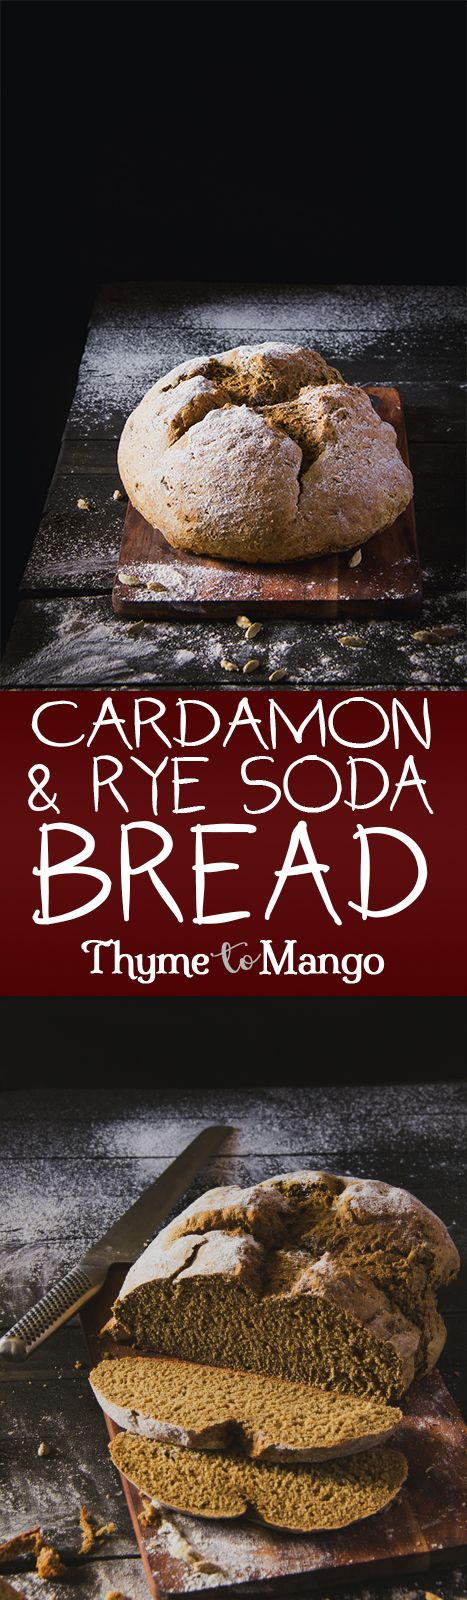 Irish and Swedish cuisines collide into a delicious cardamon infused rye soda bread.